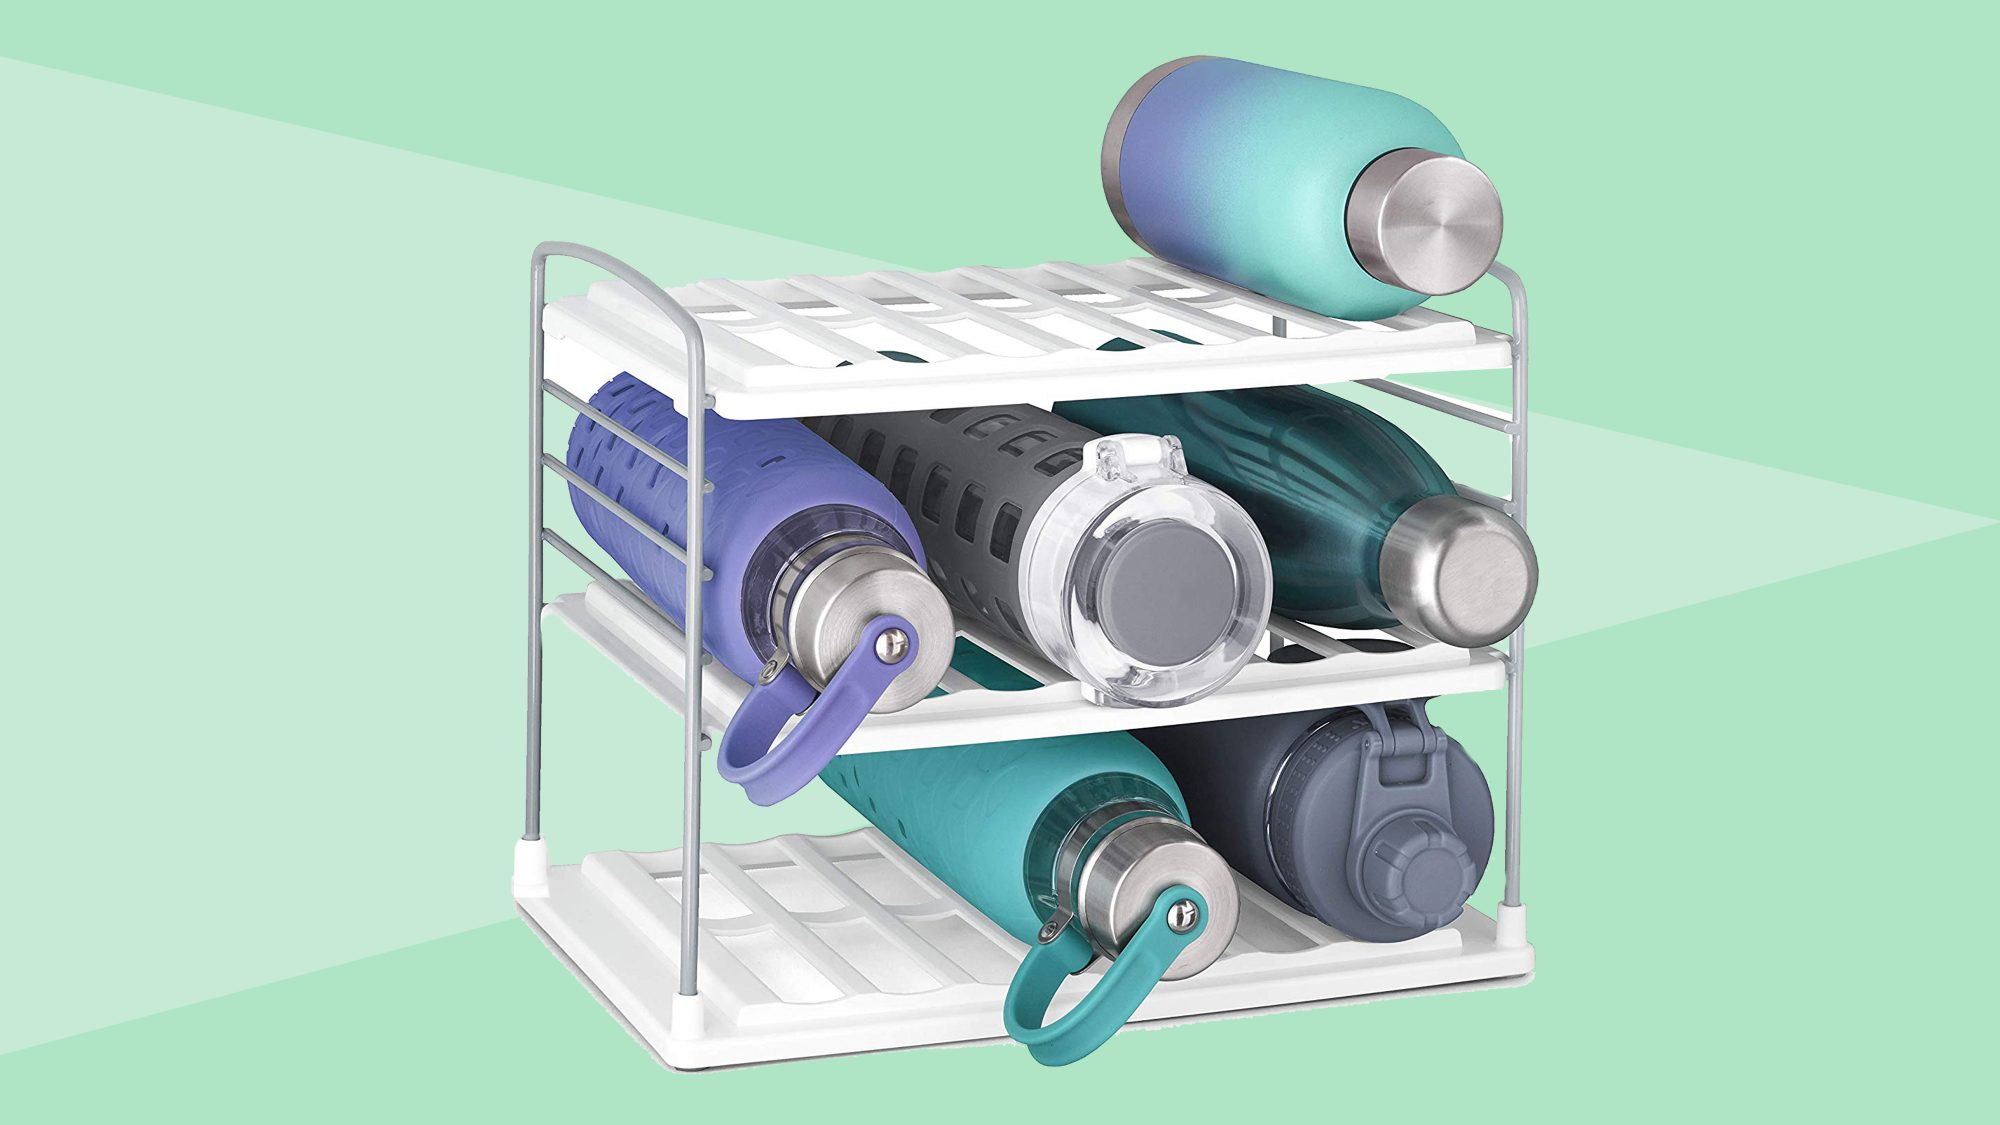 YouCopia 50243 UpSpace Water Bottle Organizer Tout